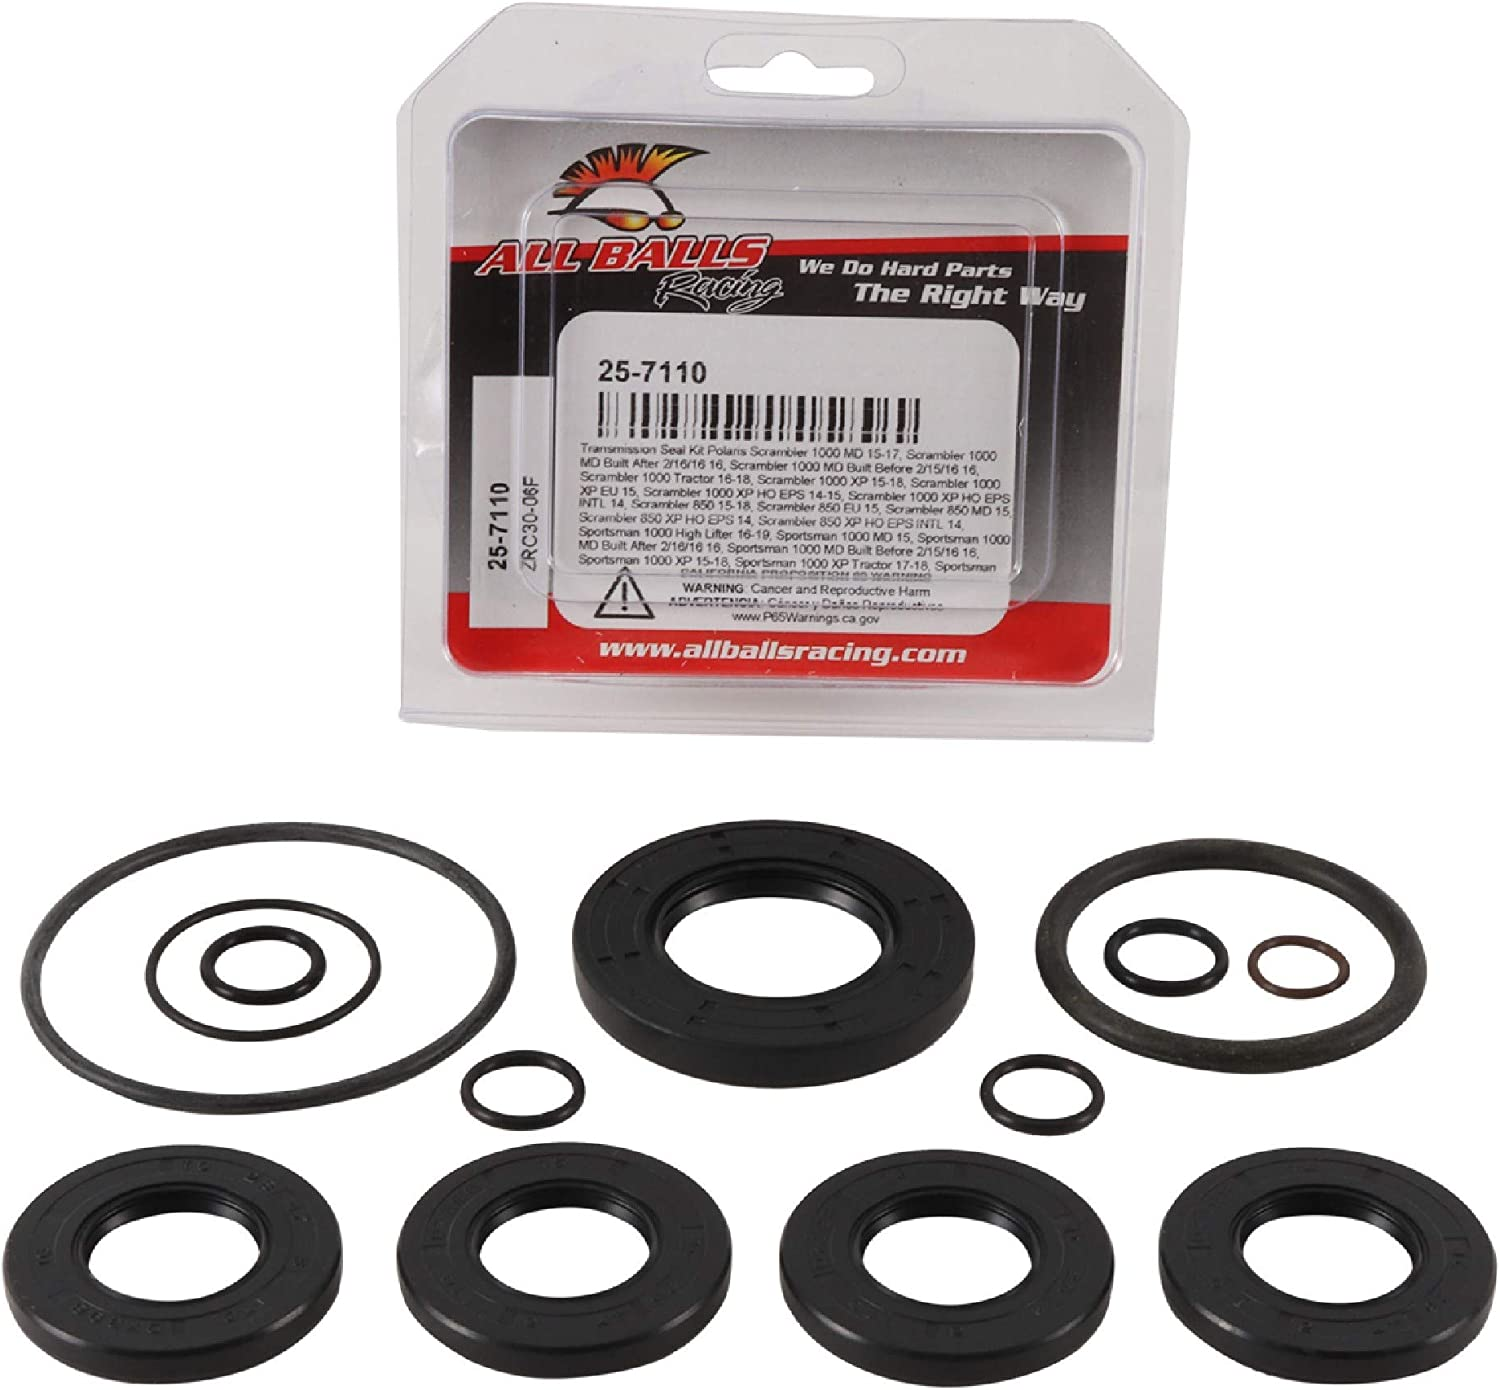 New All Balls 25-7110 Transmission seal kit Compatible with//Replacement For Polaris Scrambler 1000 MD 2015-2017 Scrambler 1000 MD Built After 2//16//16 2016 Scrambler 1000 MD Built Before 2//15//16 2016